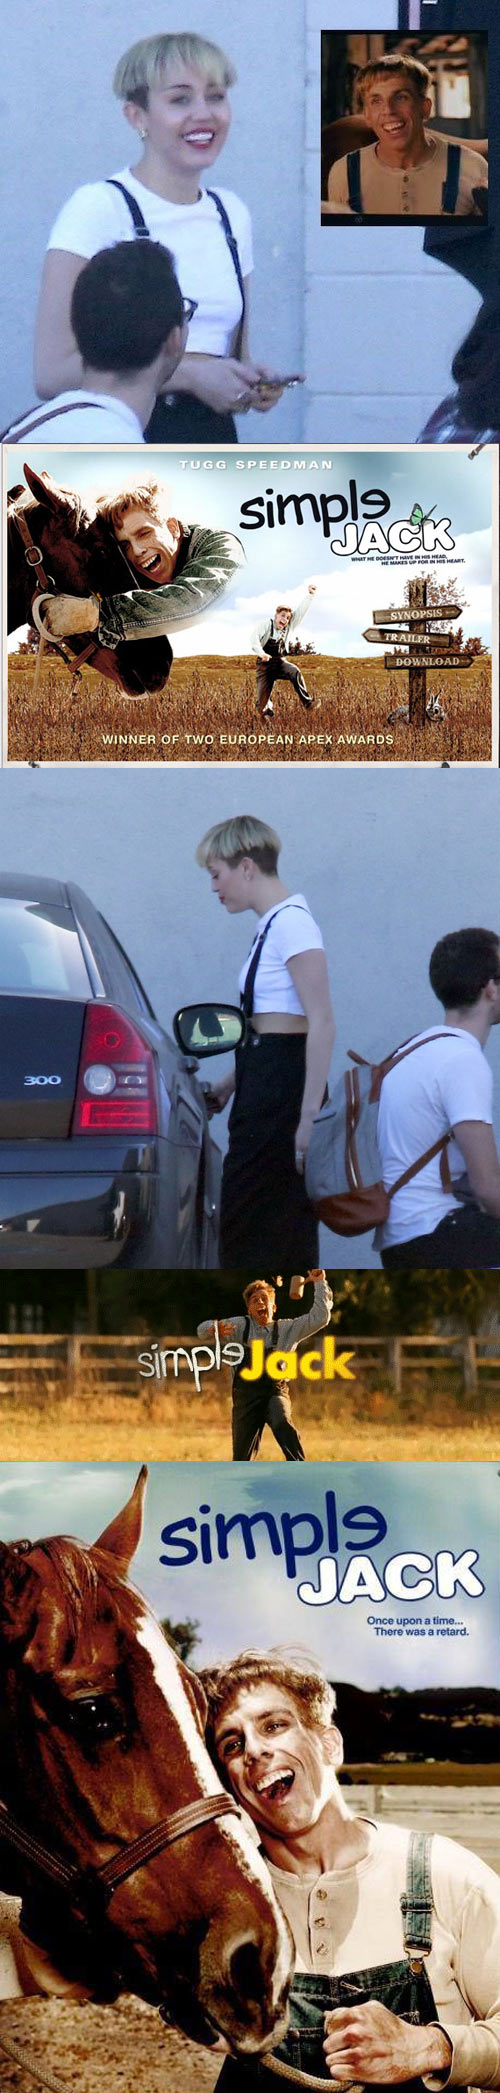 funny-picture-Miley-Cyrus-Simple-Jack-haircut